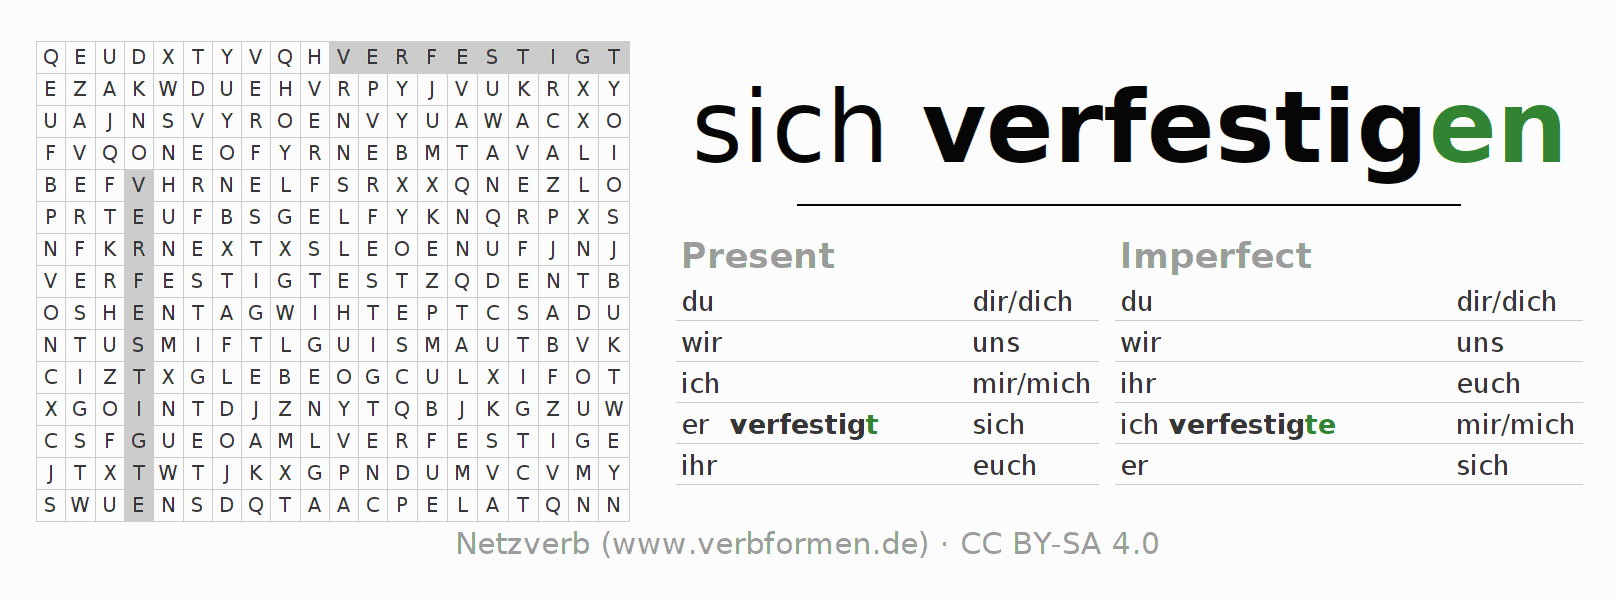 Word search puzzle for the conjugation of the verb sich verfestigen